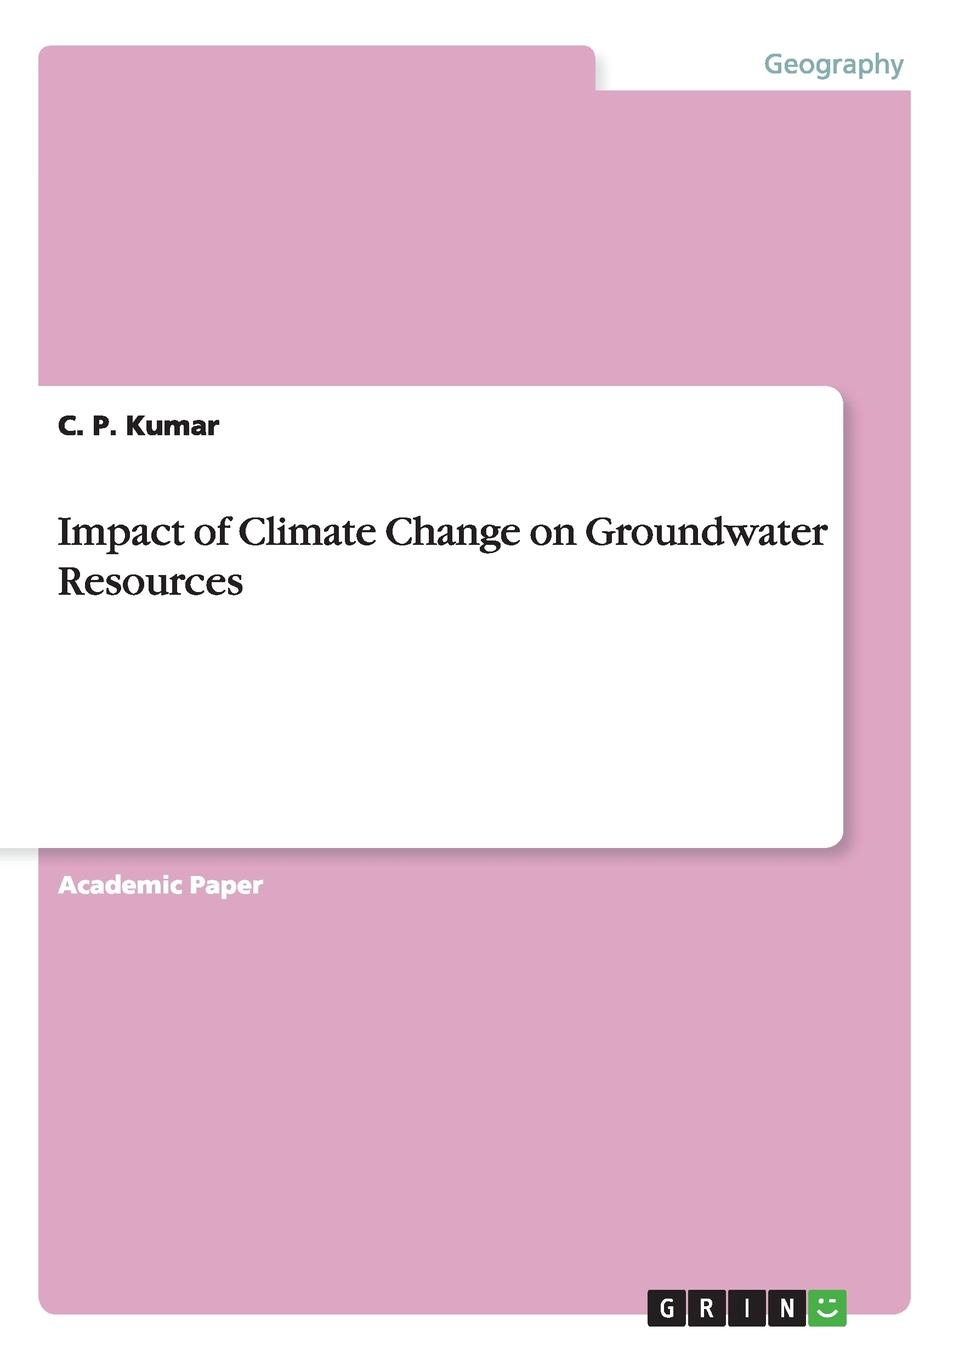 C. P. Kumar Impact of Climate Change on Groundwater Resources ktm silicone car surface water wiper scraper tool blue white